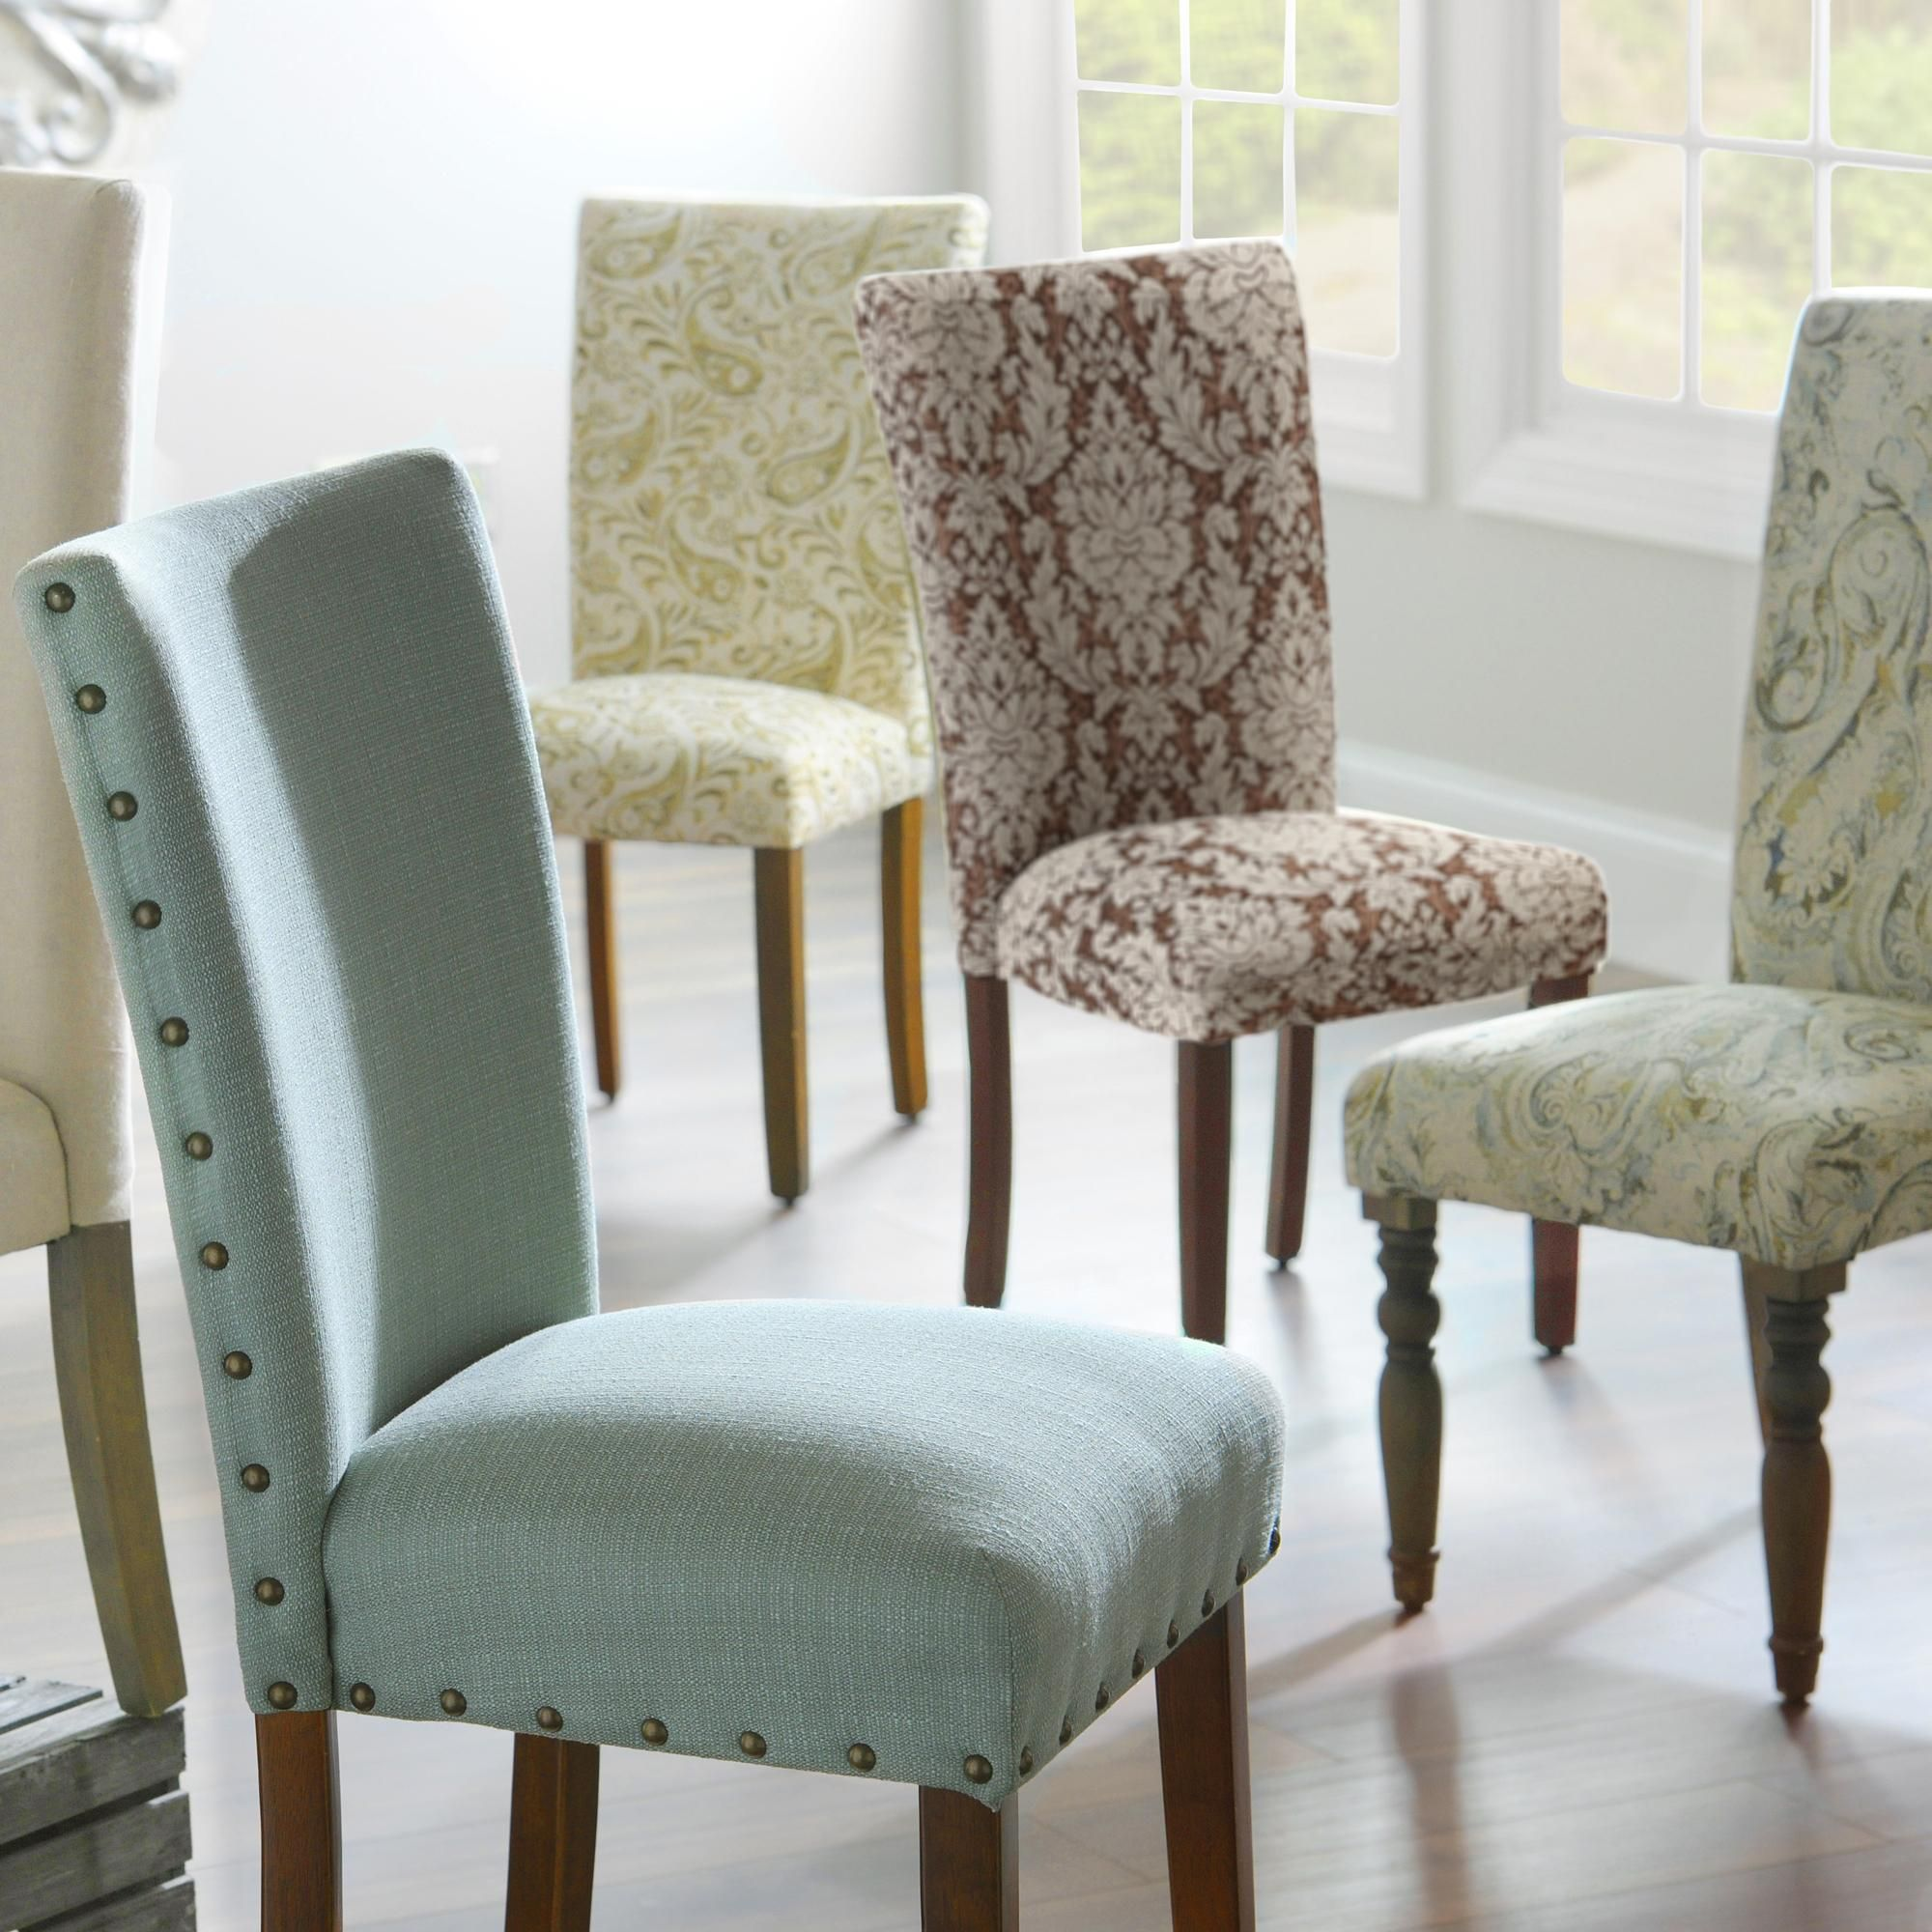 Superieur Our Very Popular Parsons Chairs Are On Sale! Save $20 Off Through 7/19.